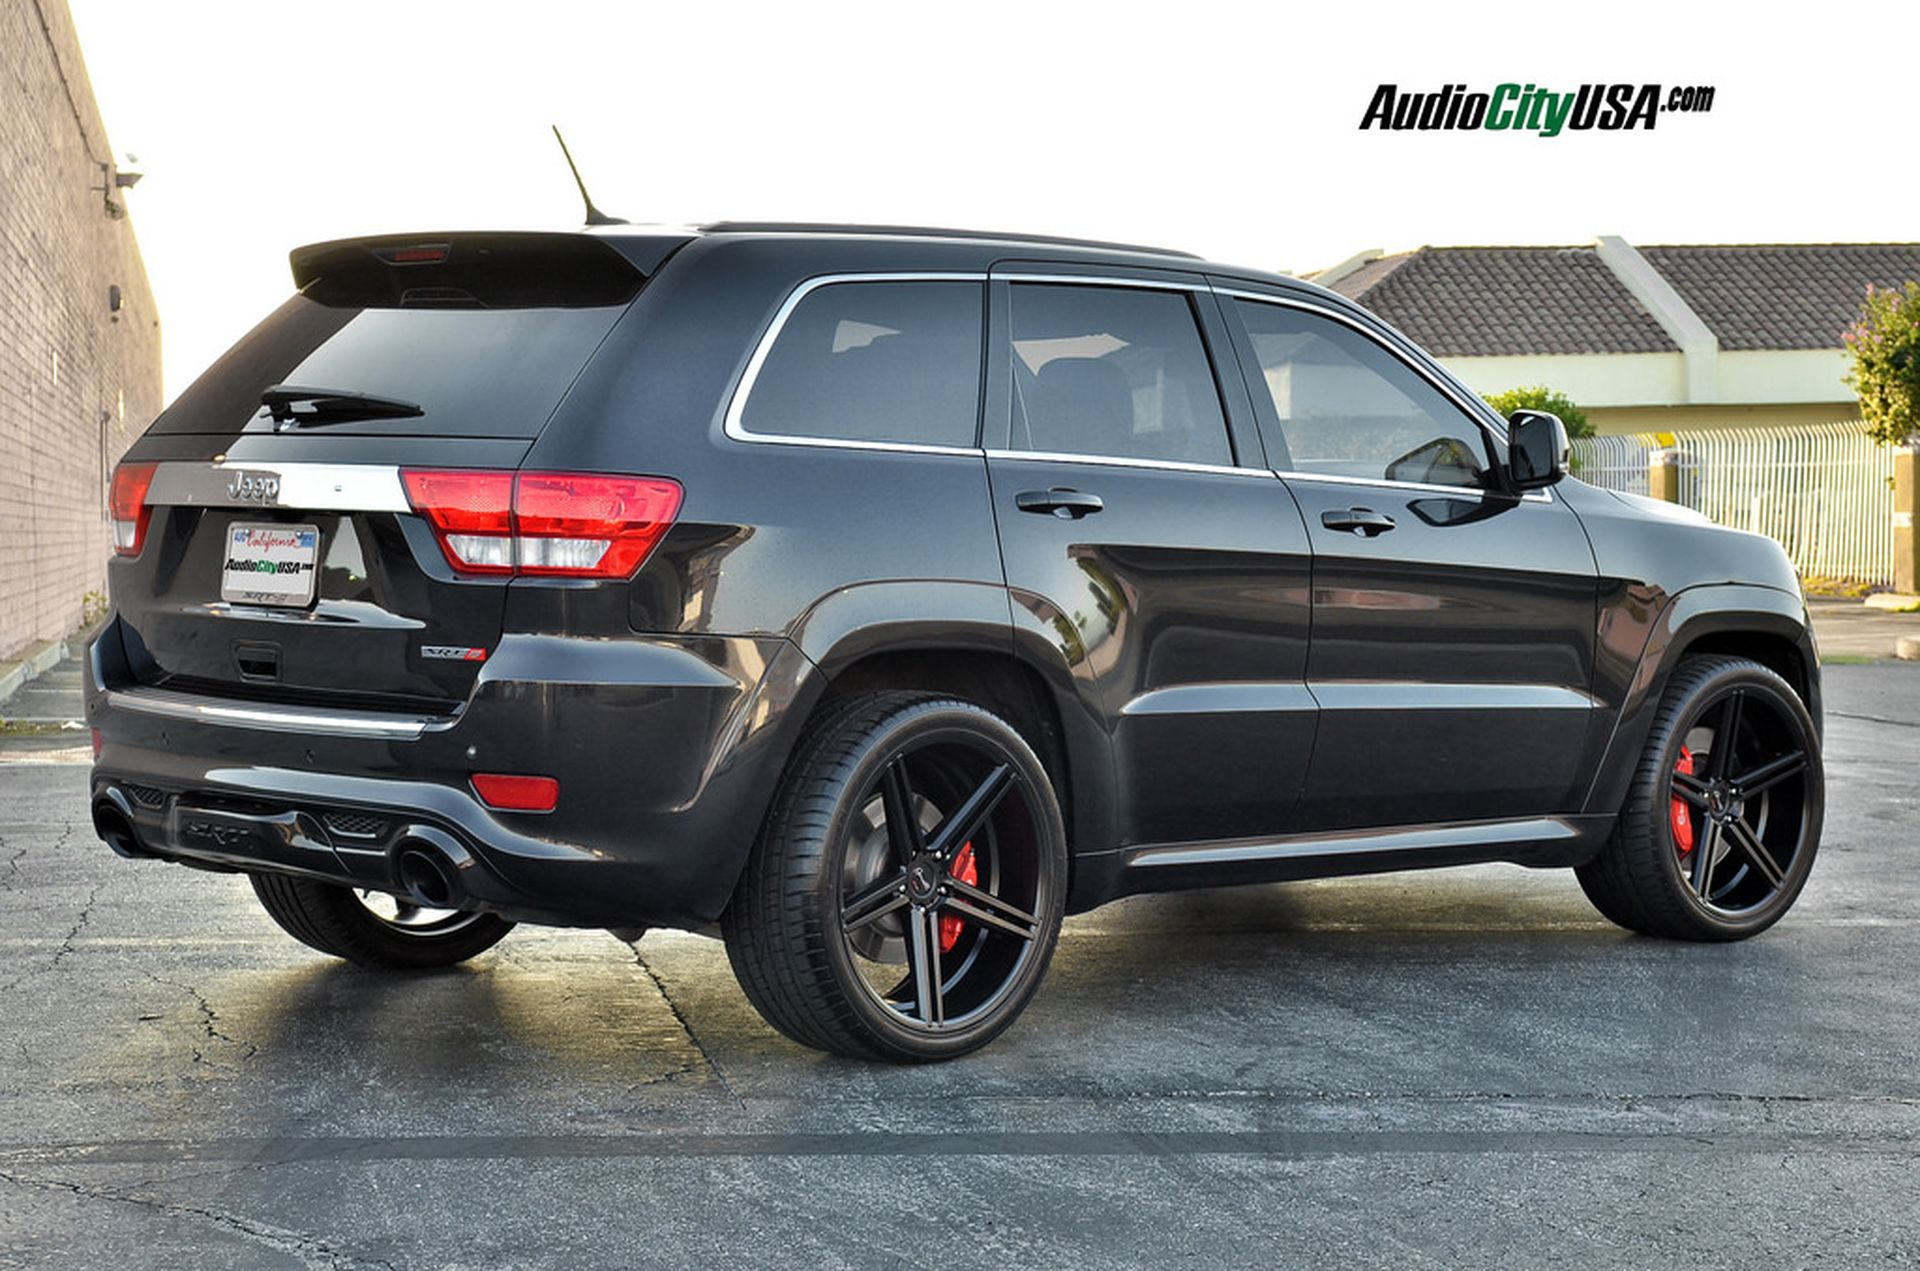 Kupit Elitnye Diski Gianelle Lucca Black Na Jeep Grand Cherokee Srt8 2013 Jeep Grand Cherokee Jeep Srt8 Jeep Grand Cherokee Srt